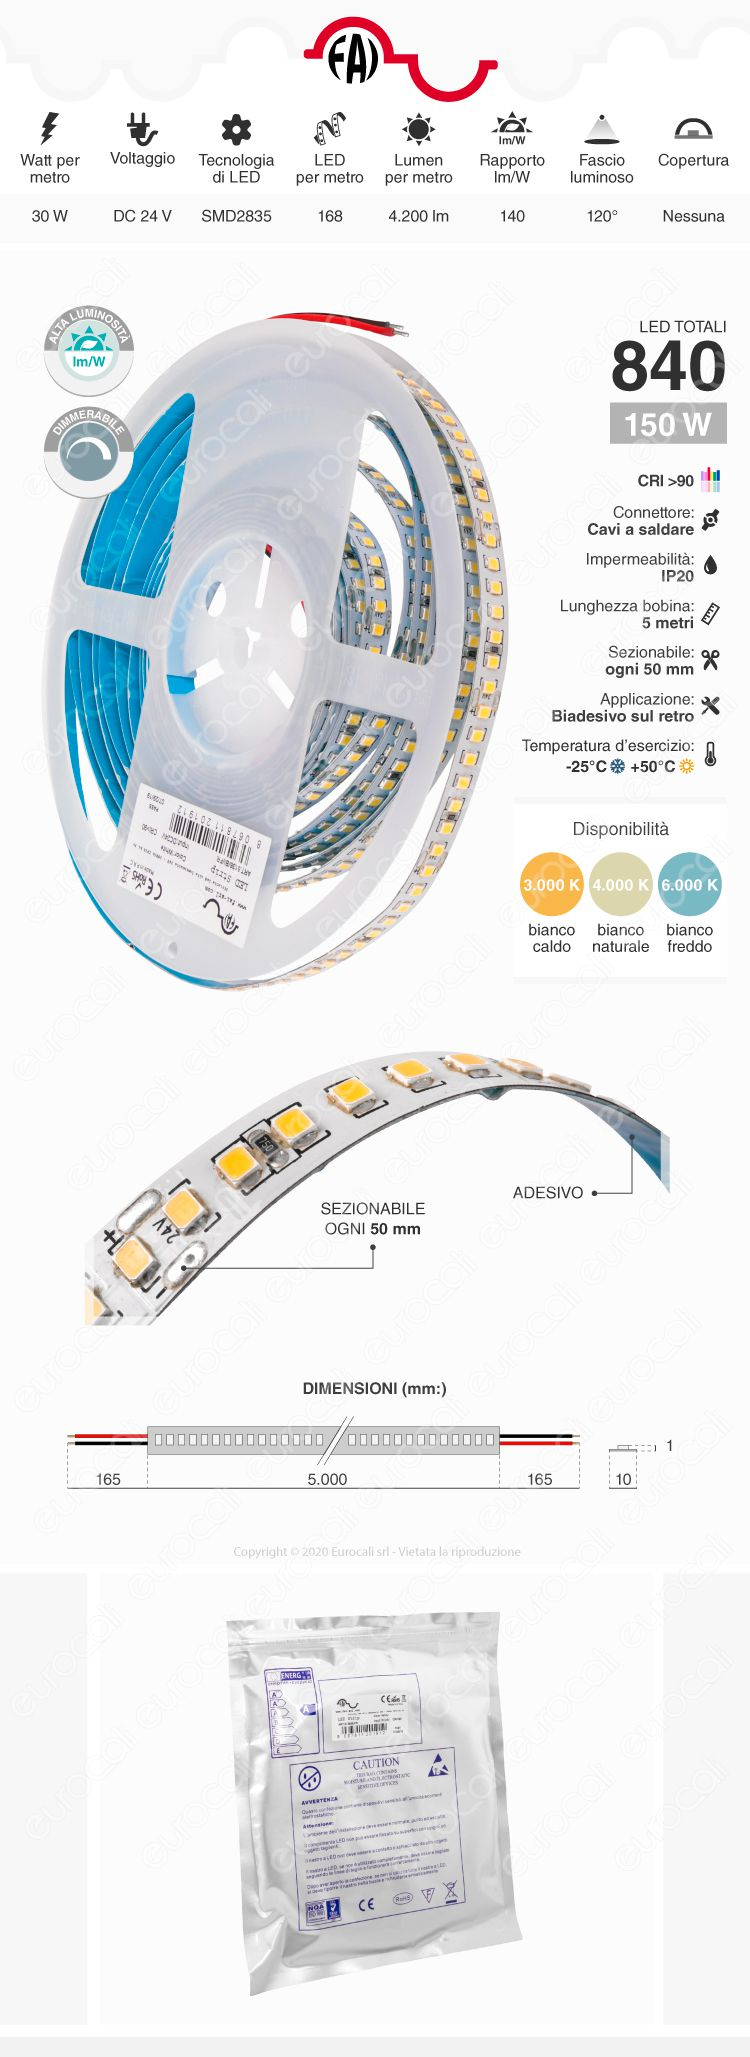 FAI Striscia LED Monocolore 168 LED/metro 24V CRI≥90